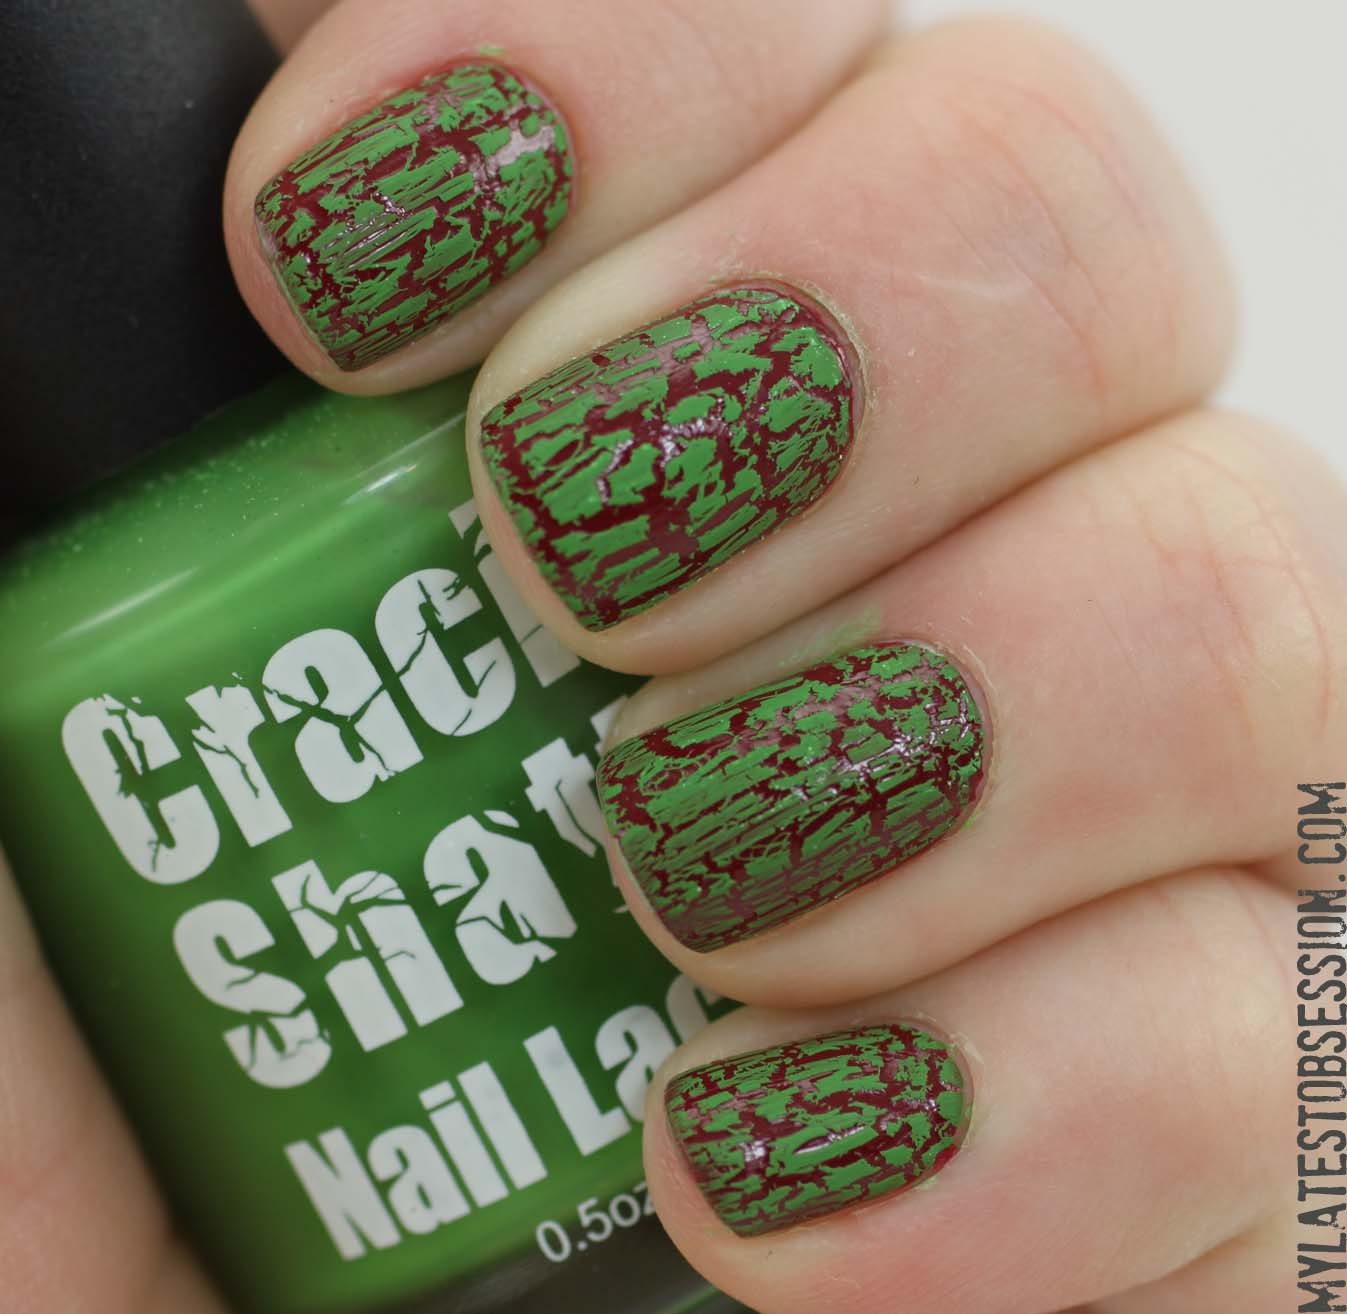 green Crackle Shatter over Ching Glaze City Siren